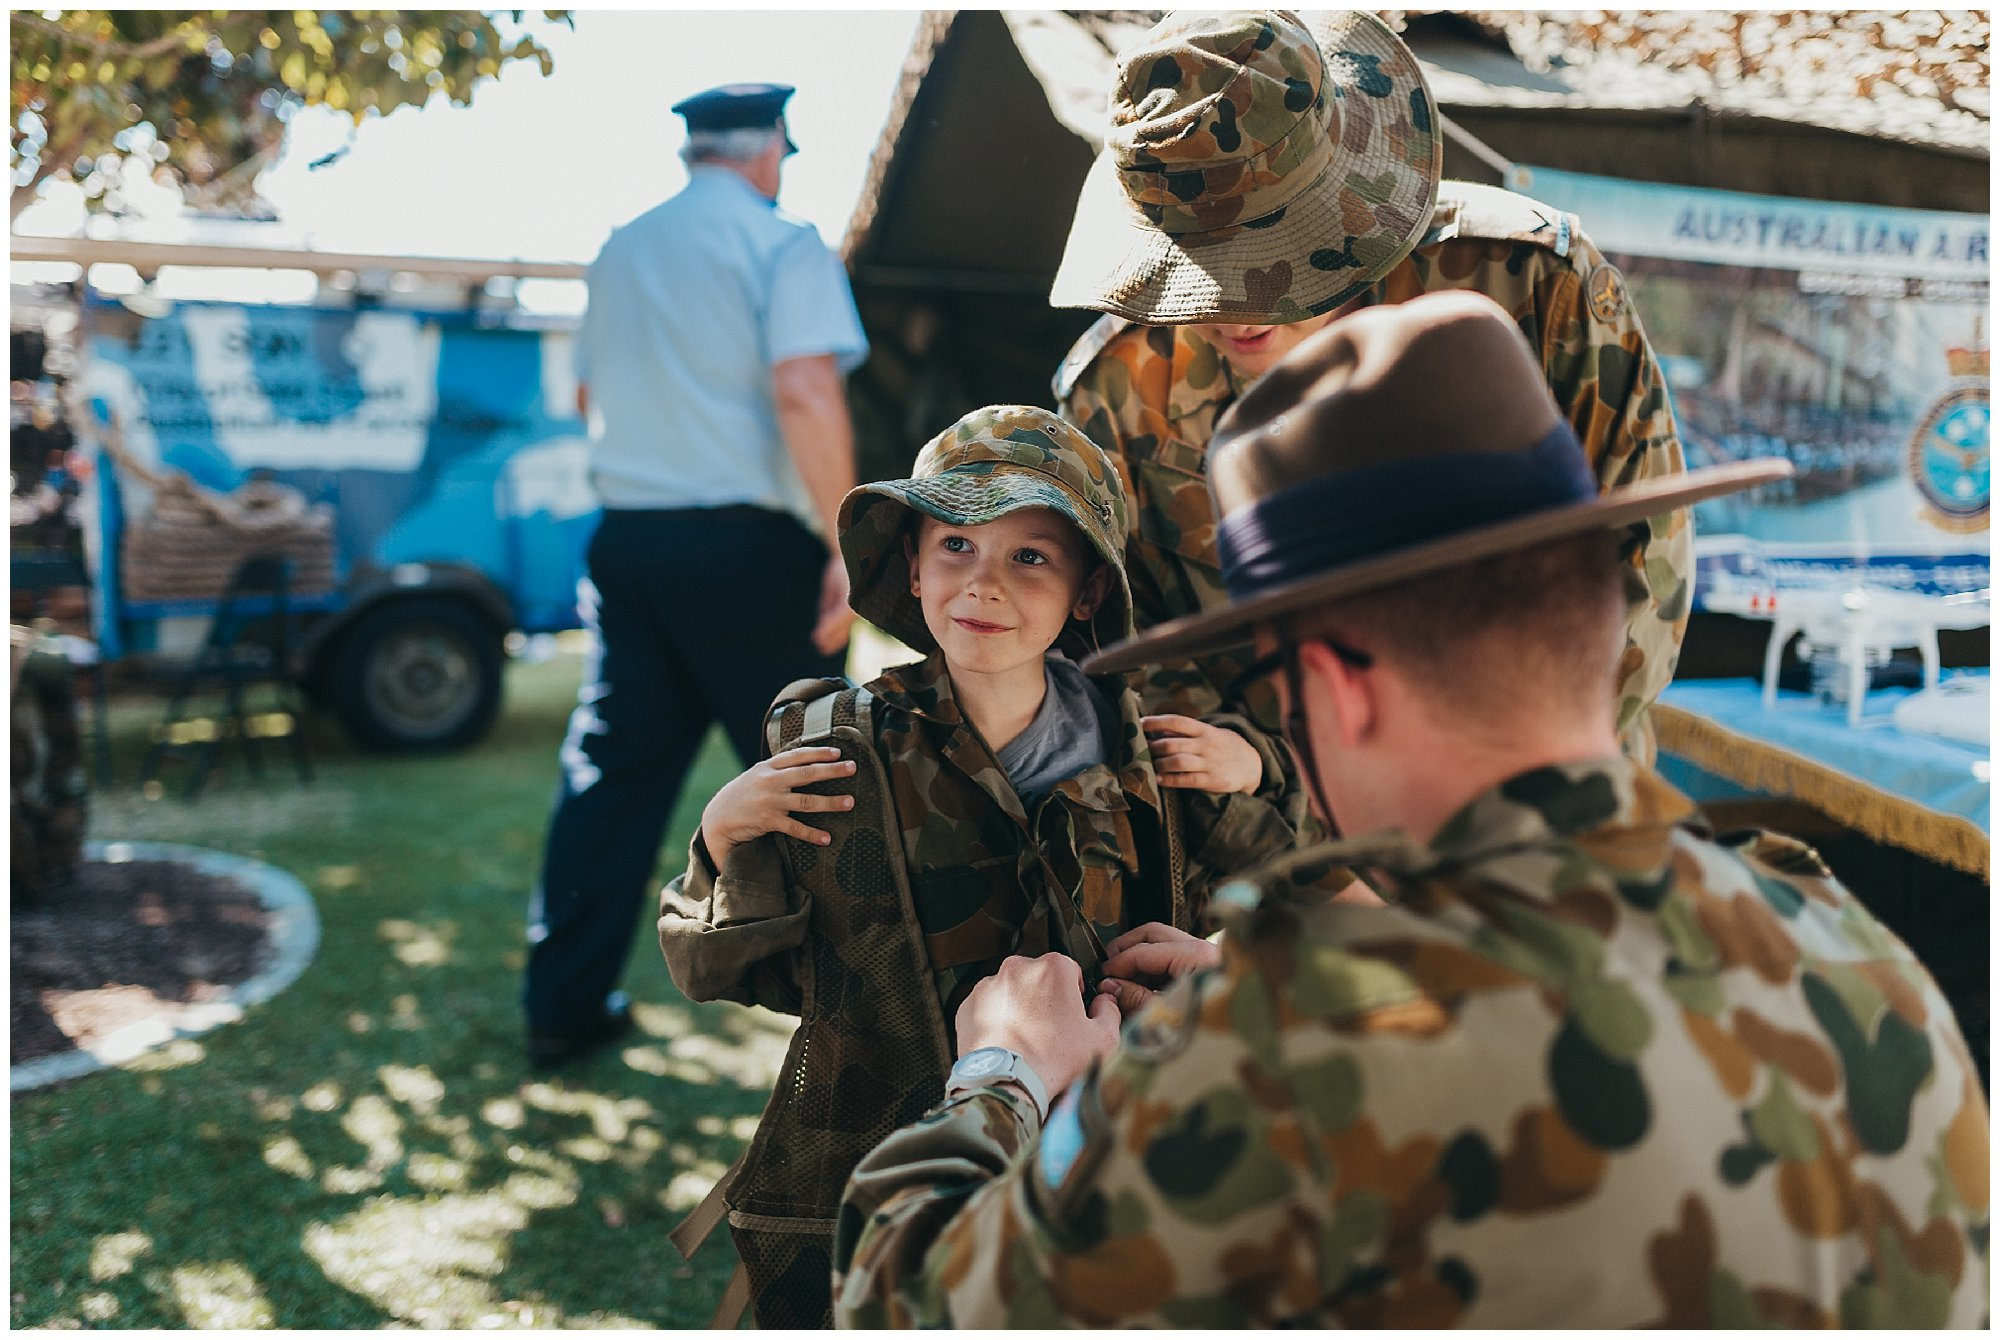 Friendly-service-men-dress-kids-up-and-show-them-military-sleeping-quarters-at-gold-coast-show